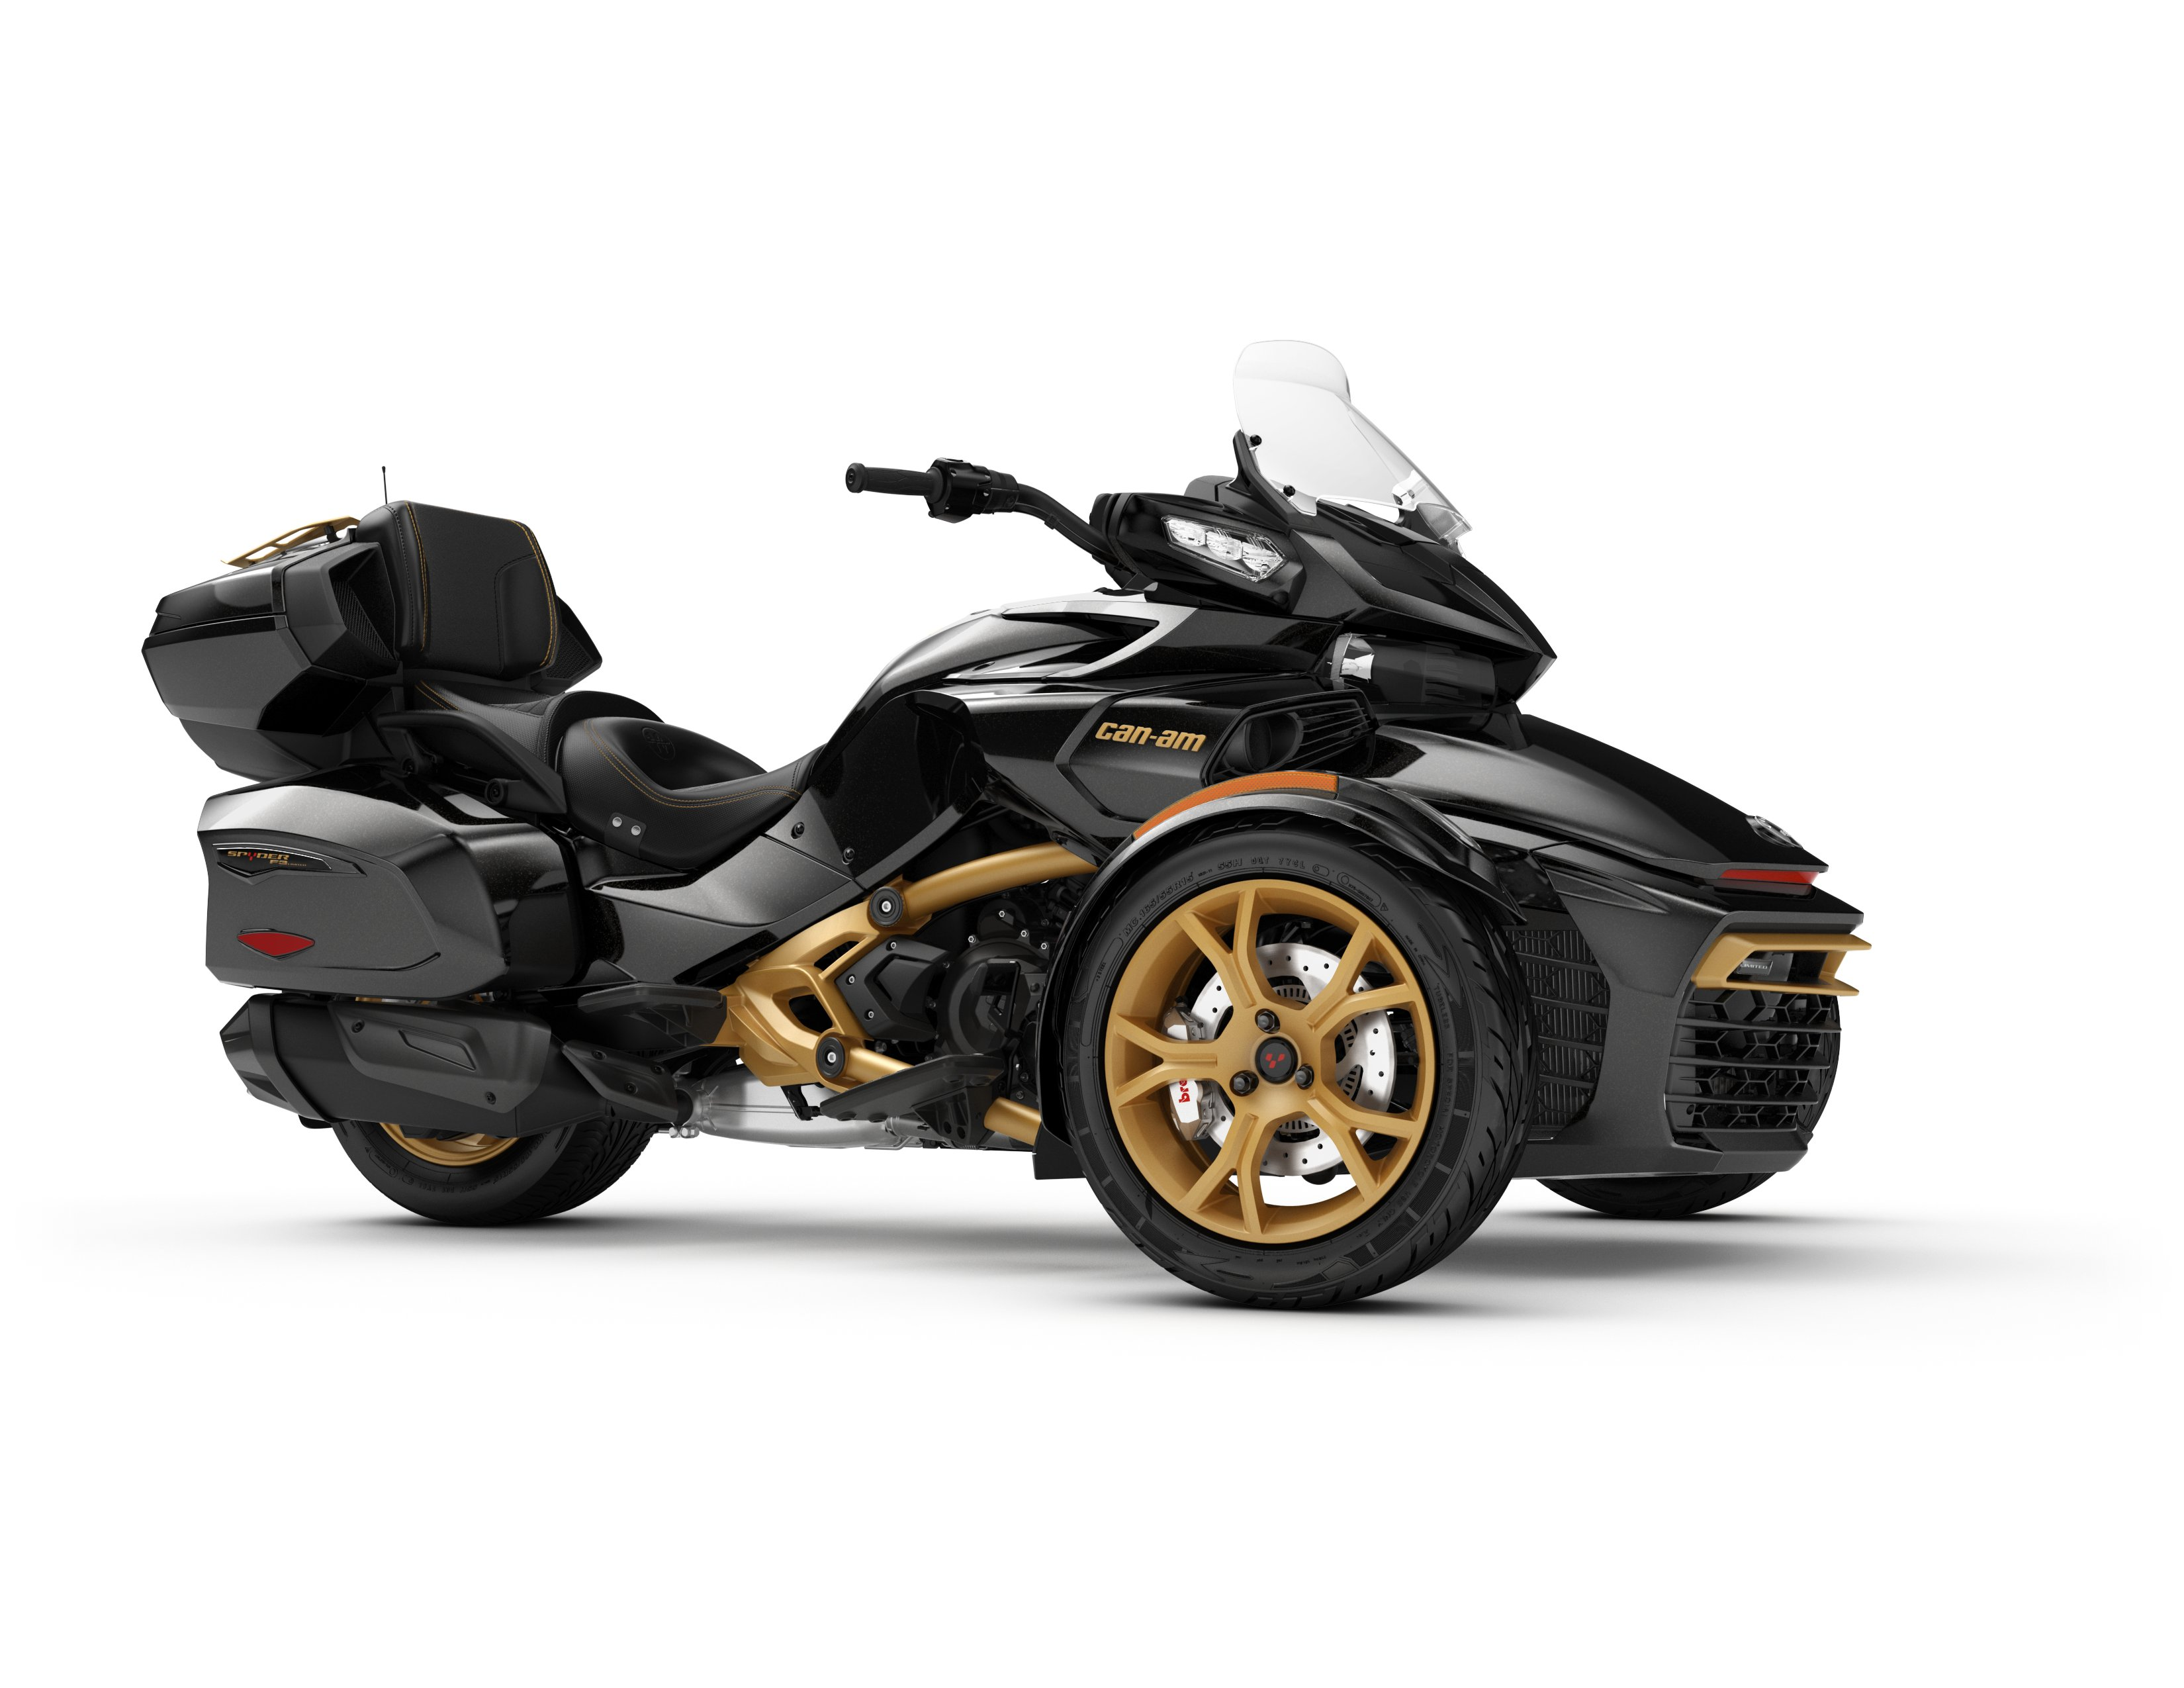 spyder f3 limited s rie sp ciale 10 me anniversaire can am spyder f3 limited serie s rs racing. Black Bedroom Furniture Sets. Home Design Ideas